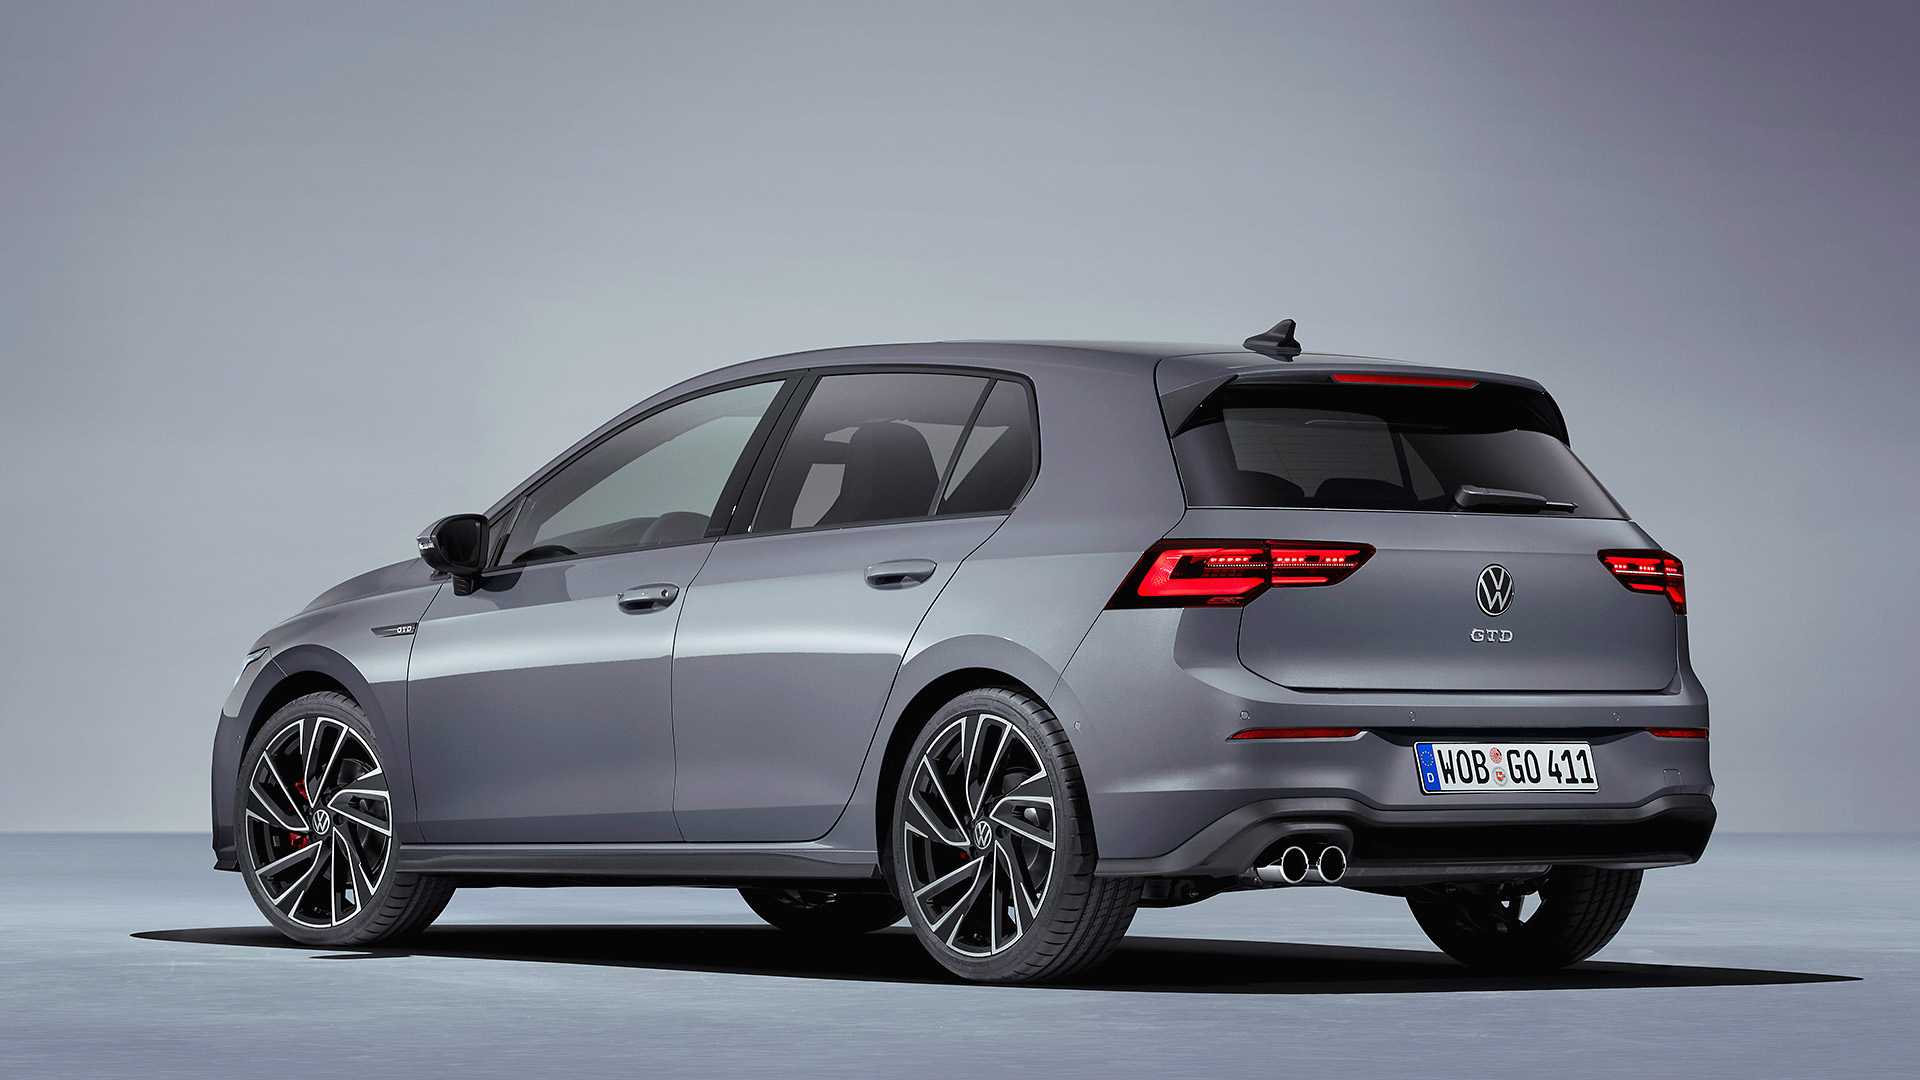 2020 Volkswagen Golf GTD Wallpaper